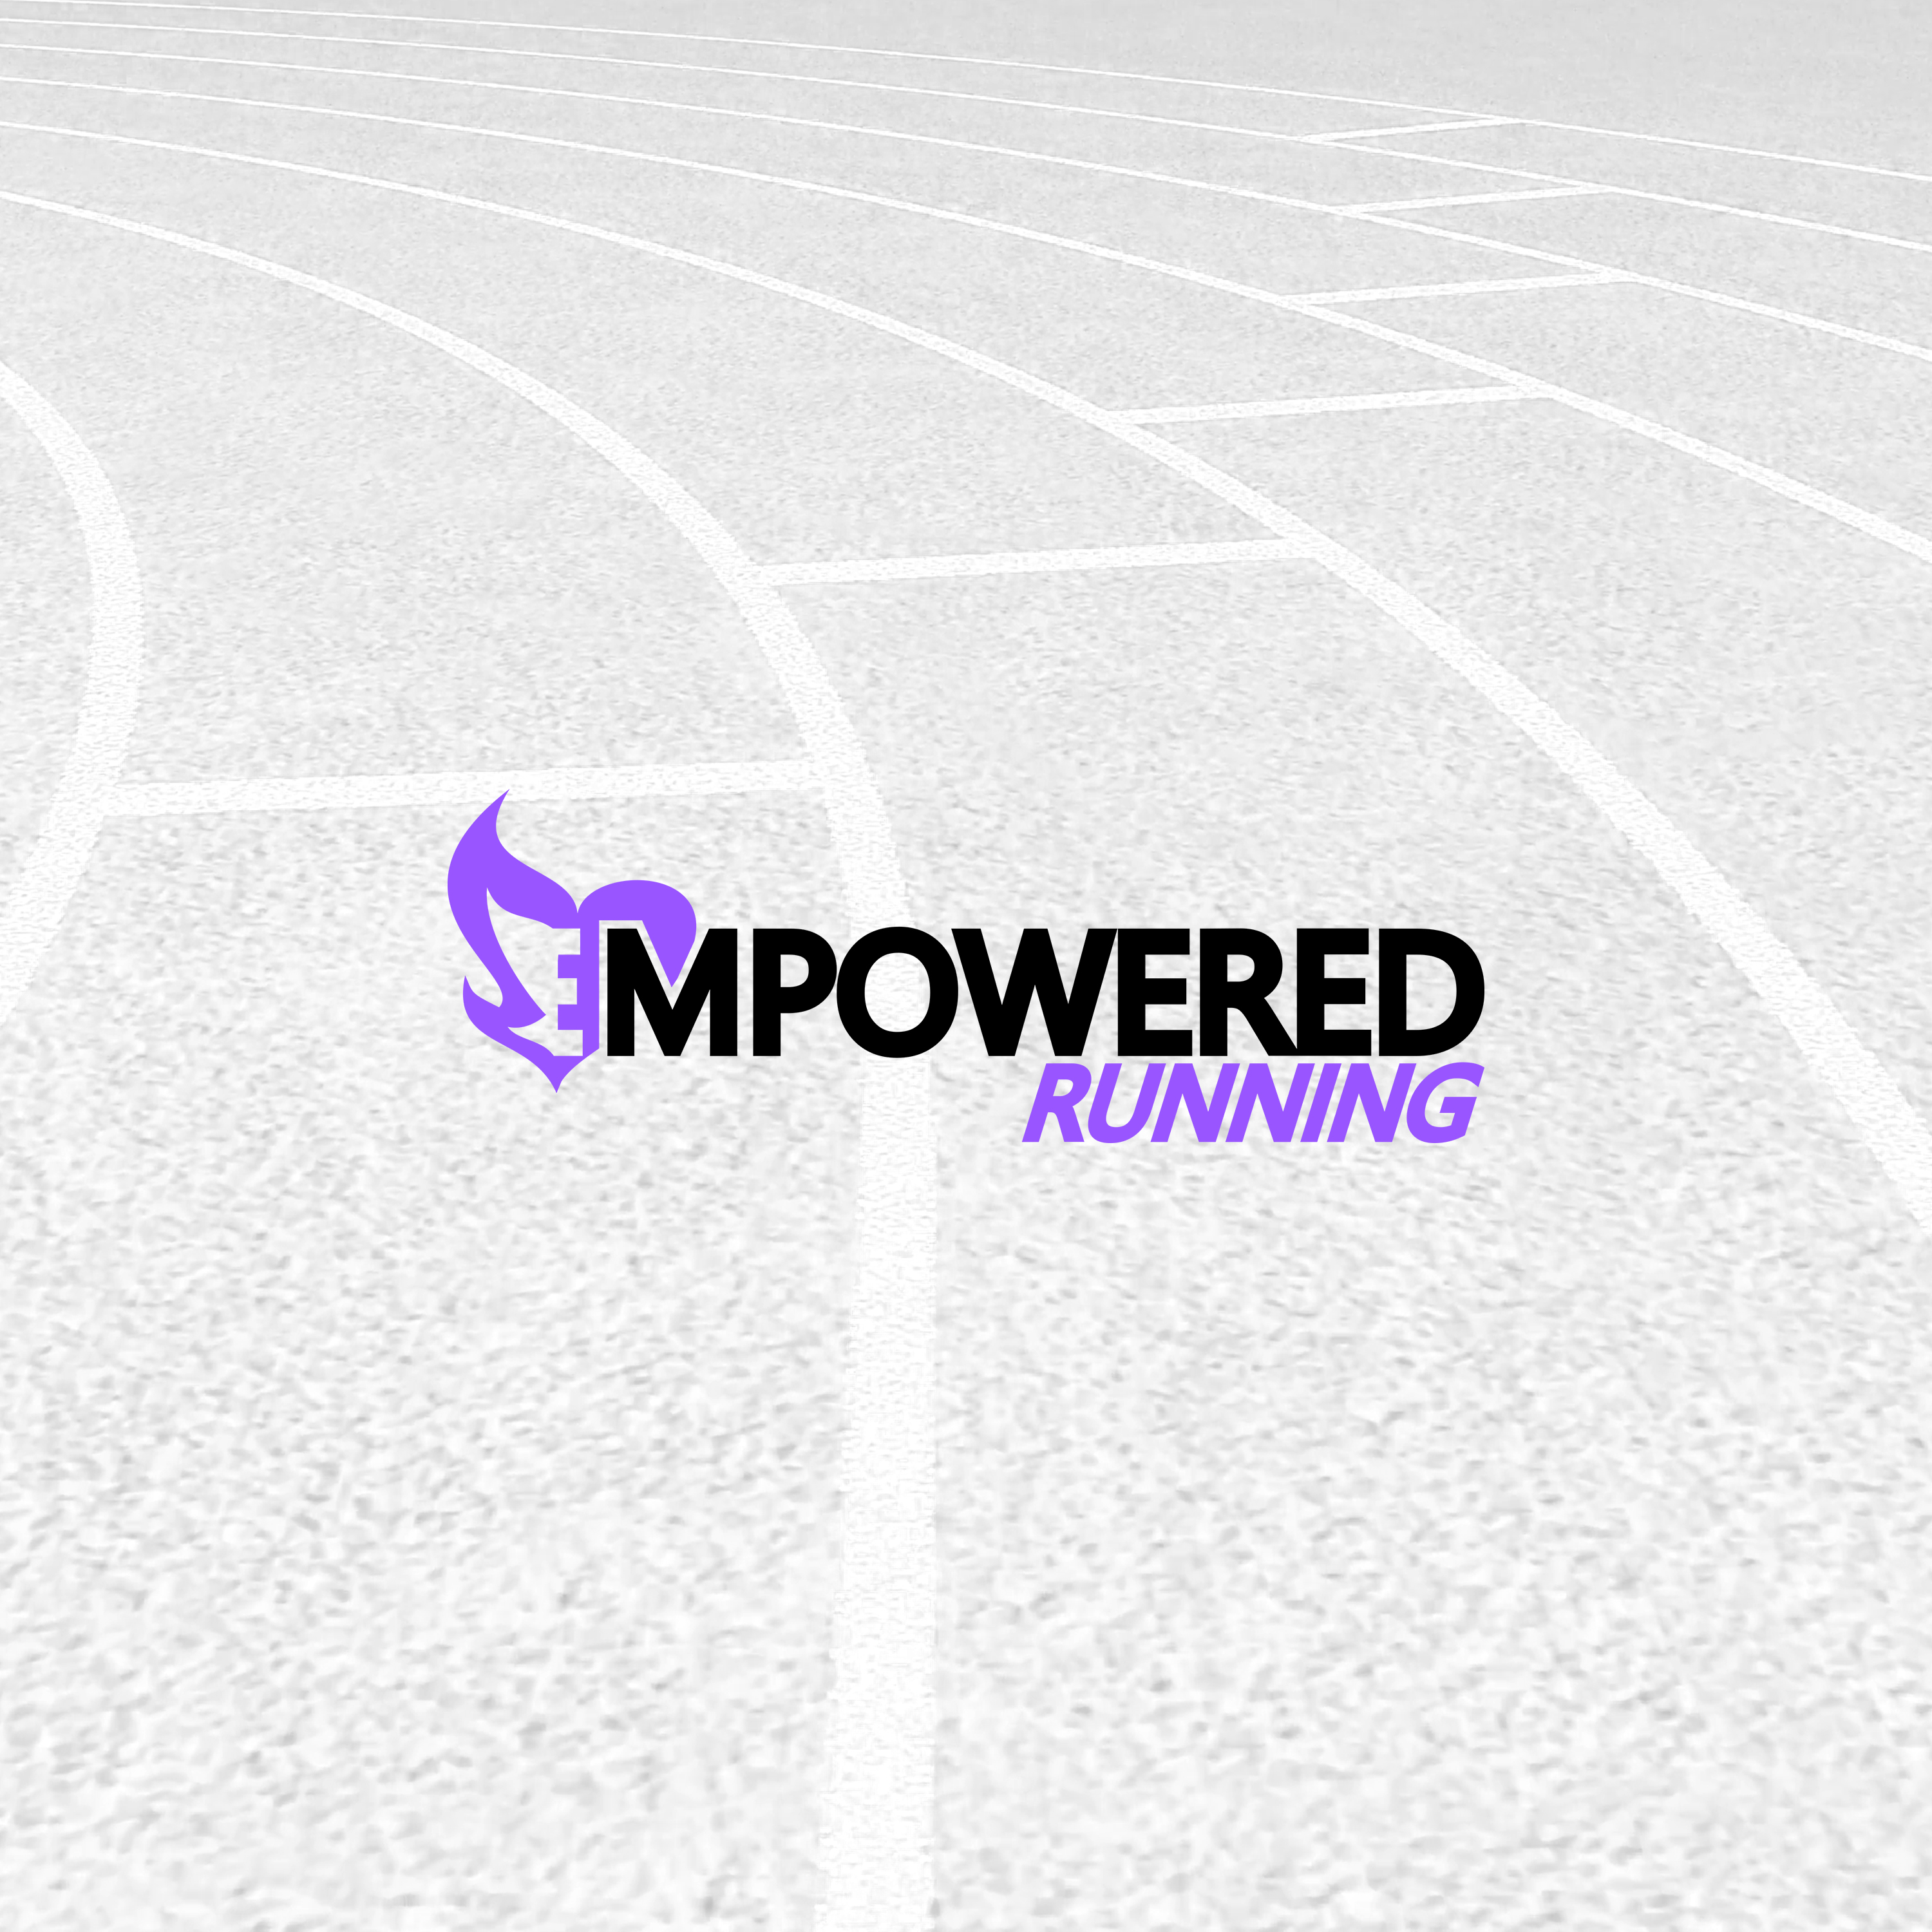 empowered-running-logo-design-servant-productions